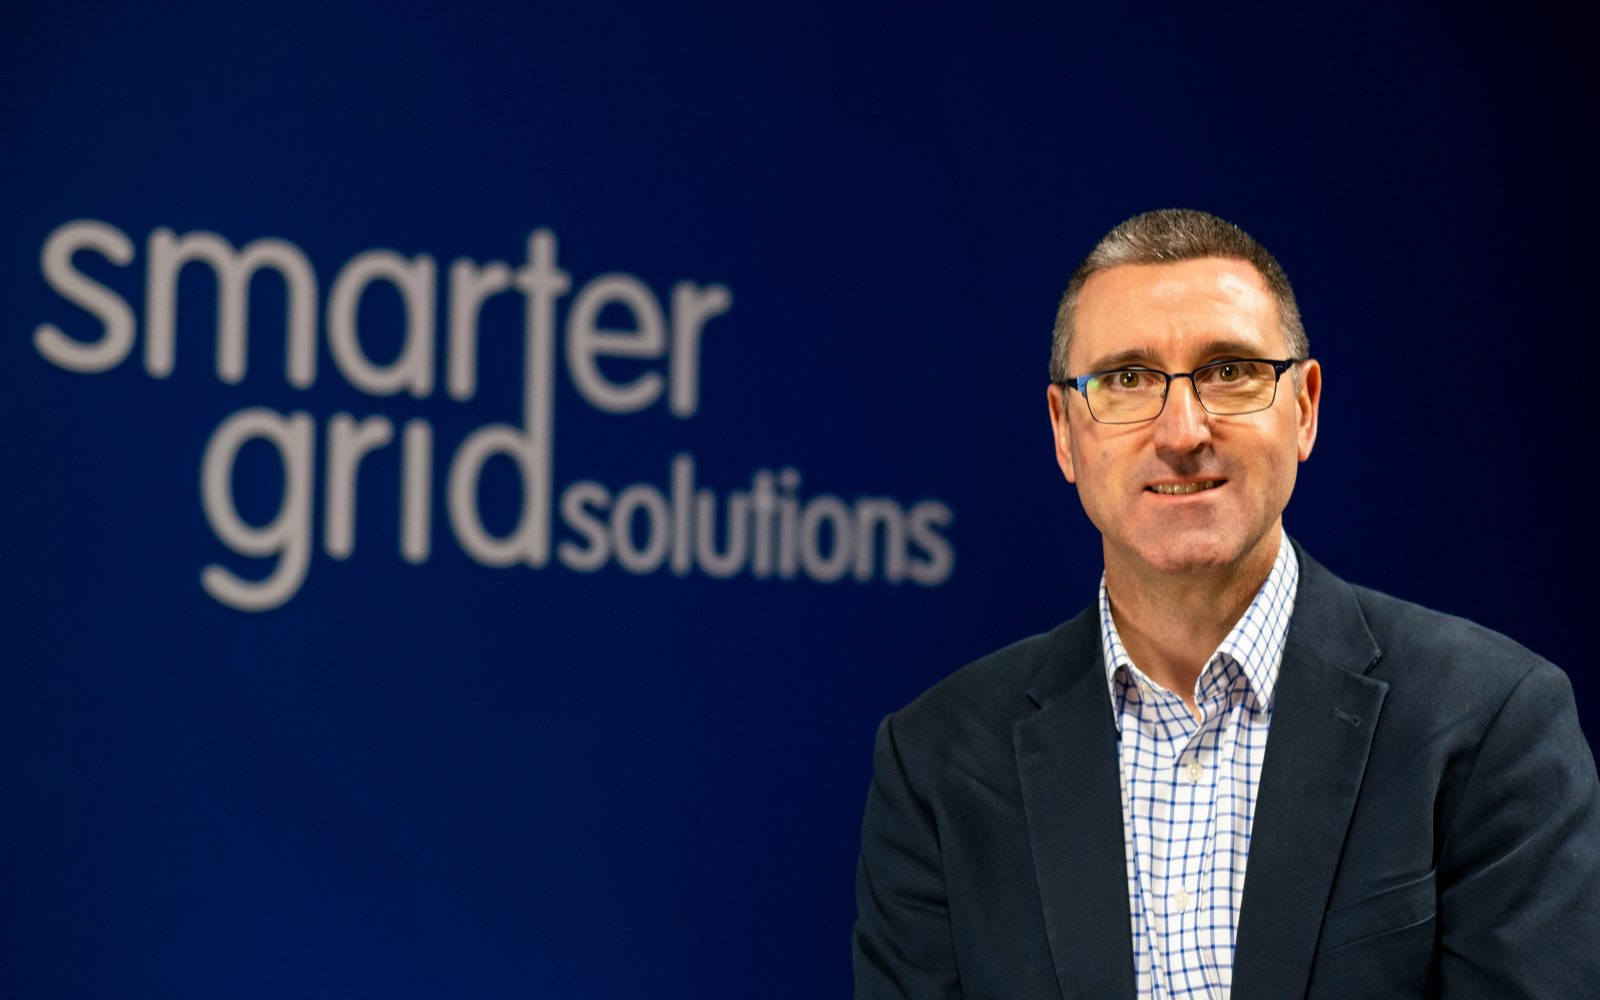 Smarter Grid Solutions' executive director, Graham Ault. Image: Smarter Grid Solutions.